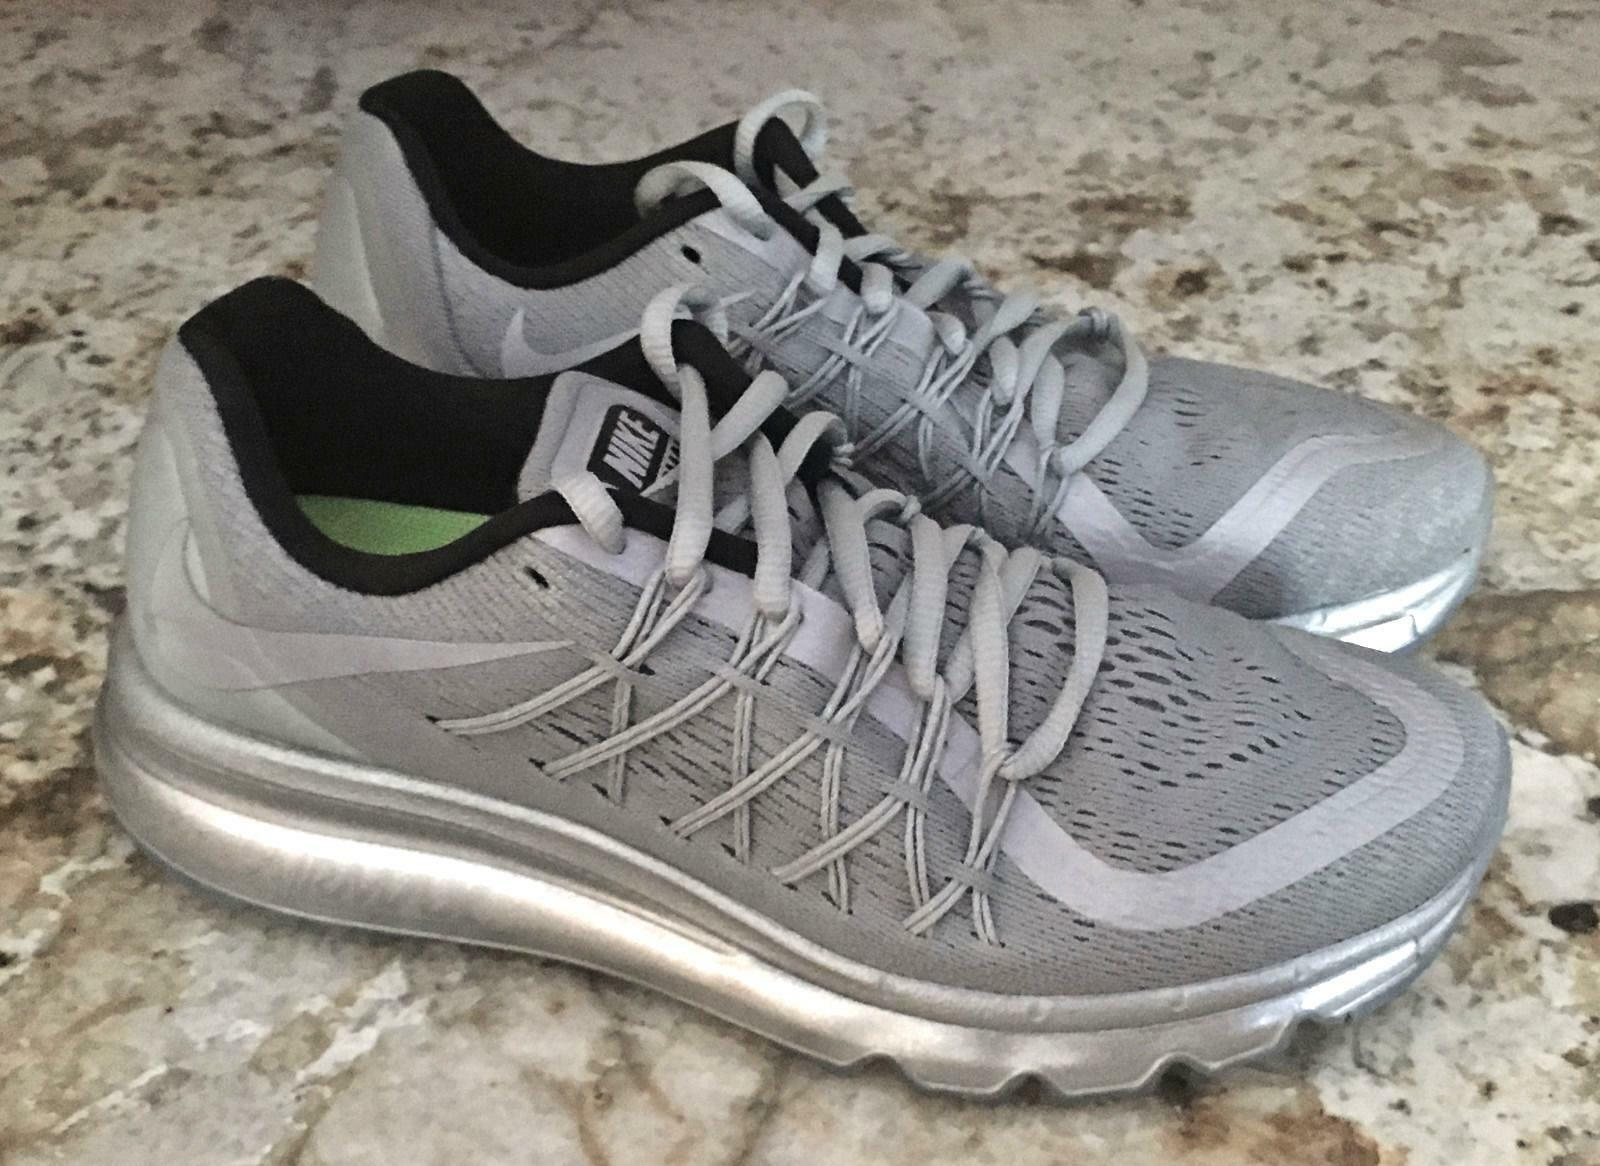 NIKE AIR MAX 360 2015 Reflective Silver Running Training shoes NEW Womens Sz 6 8